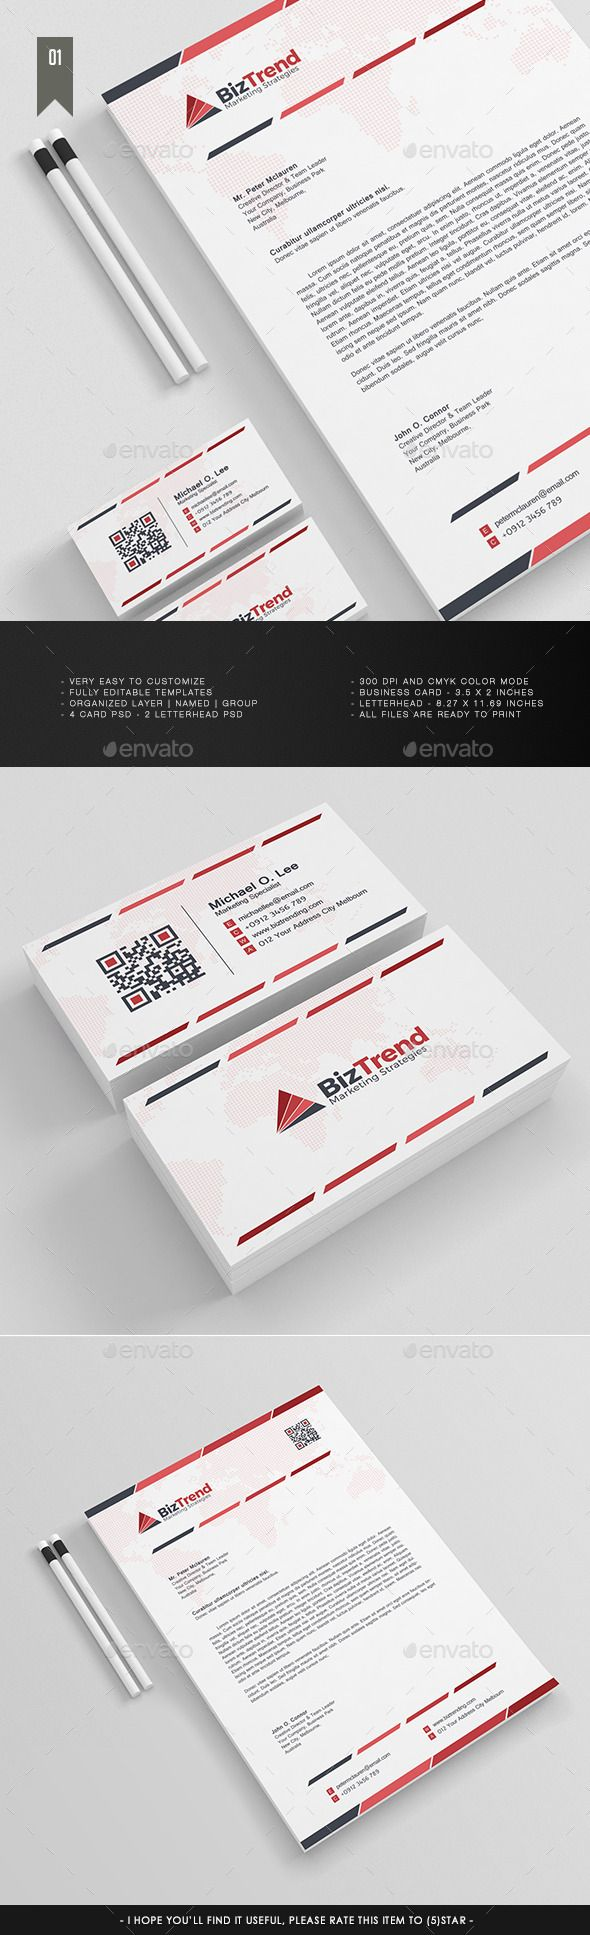 Letterhead & Business Card V.1 | Business cards, Stationery printing ...